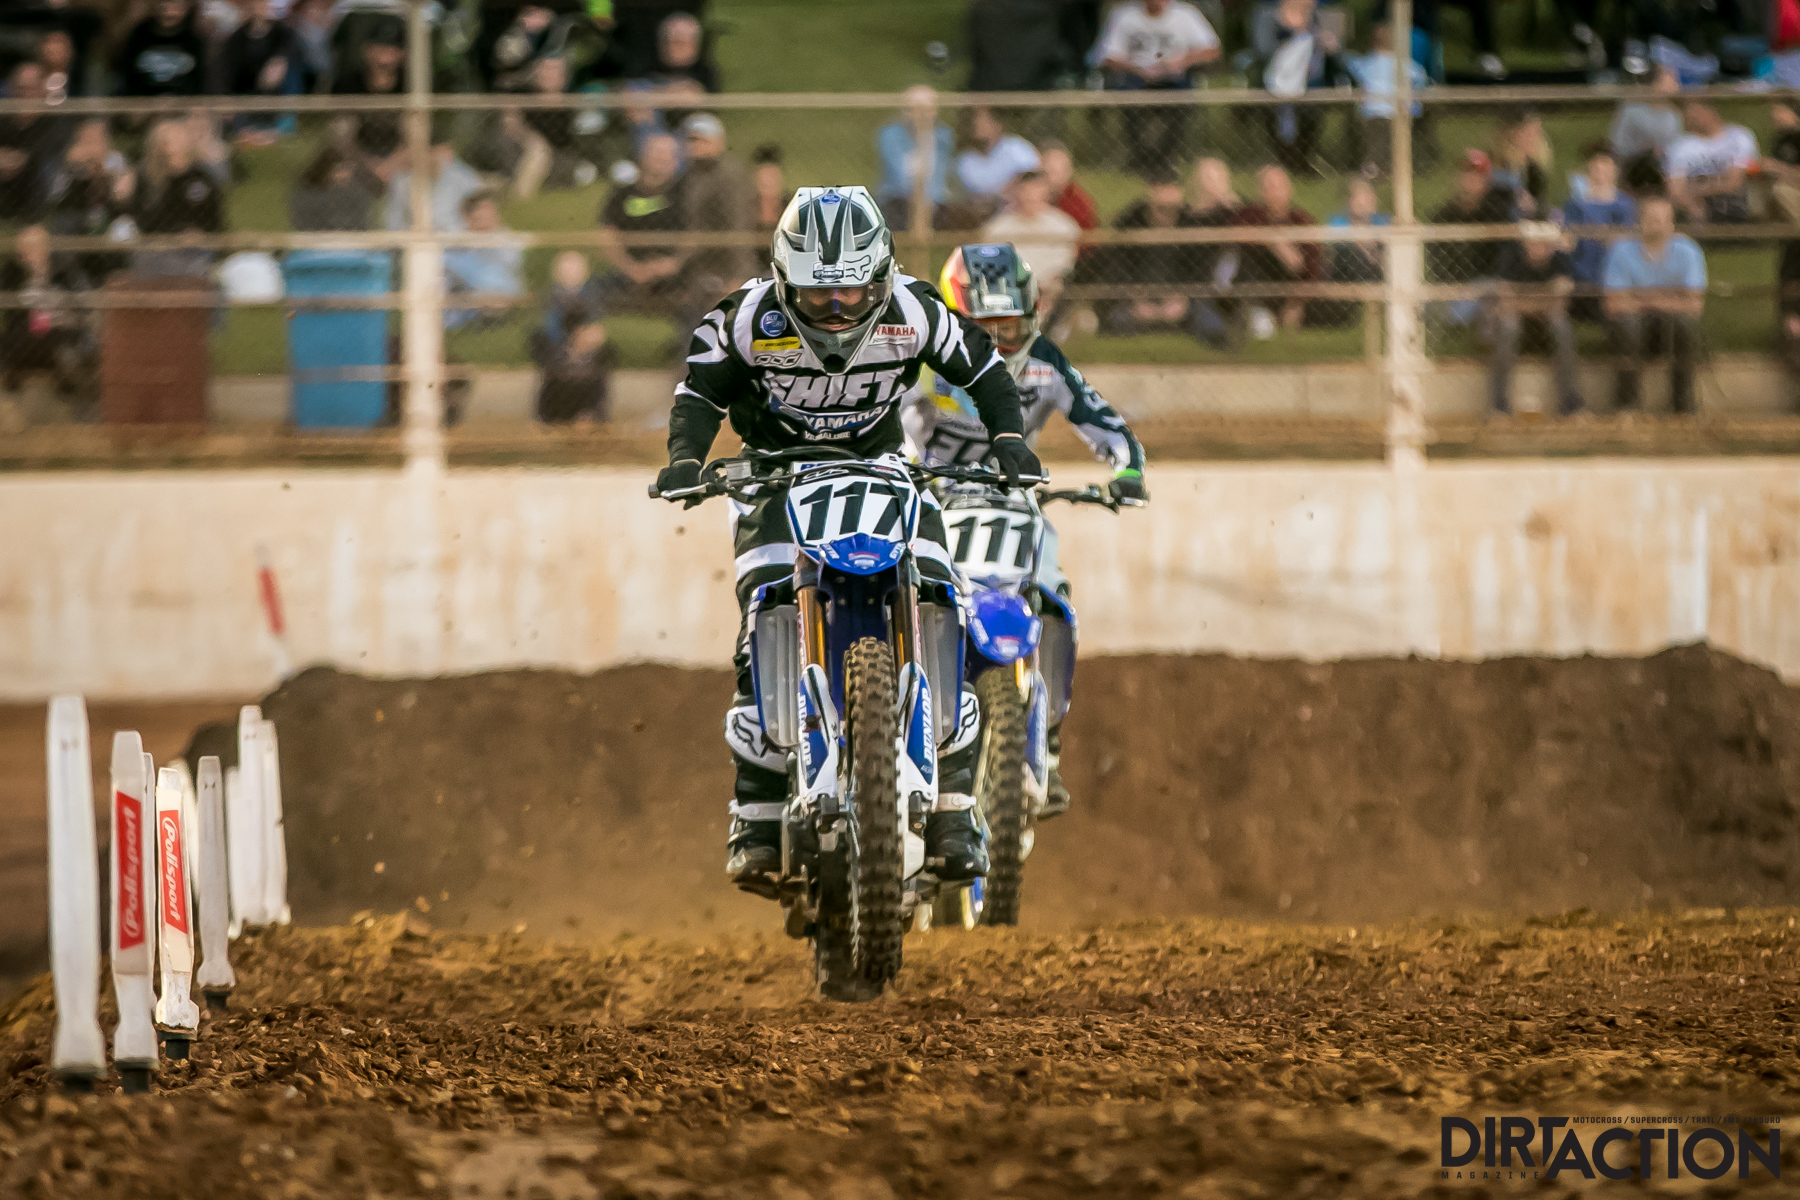 2017SXRD3DIRTACTION-115